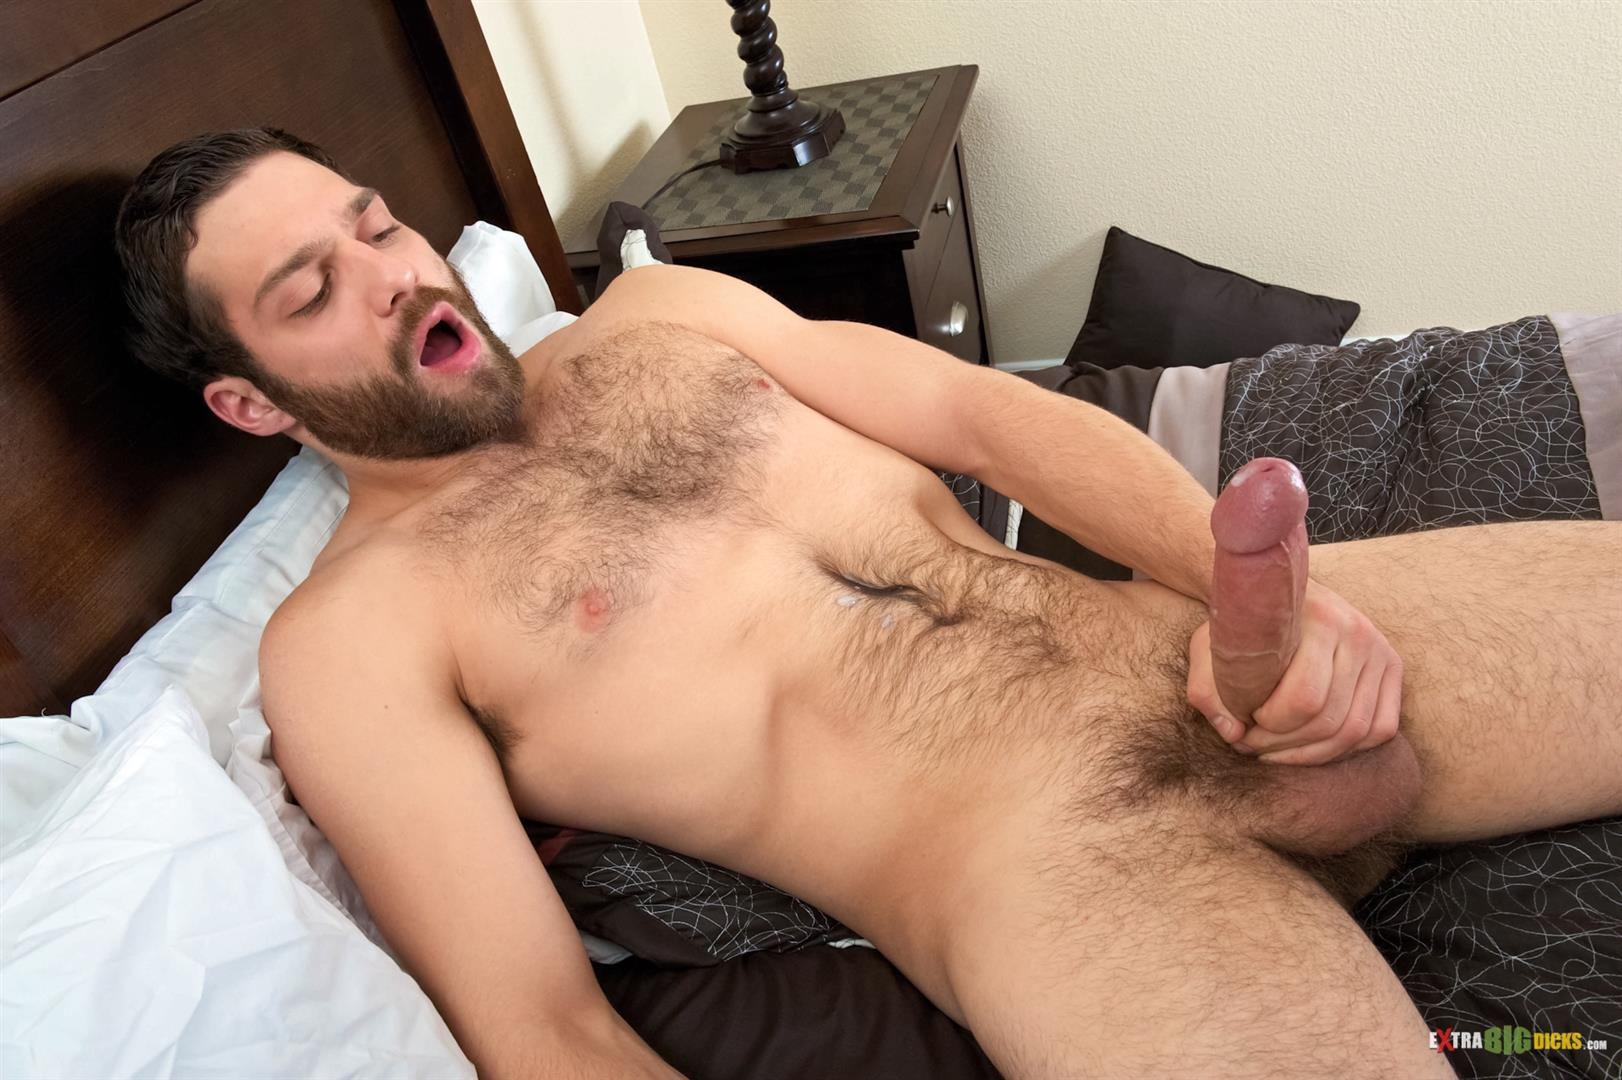 Straight guys jerk off before camera gay